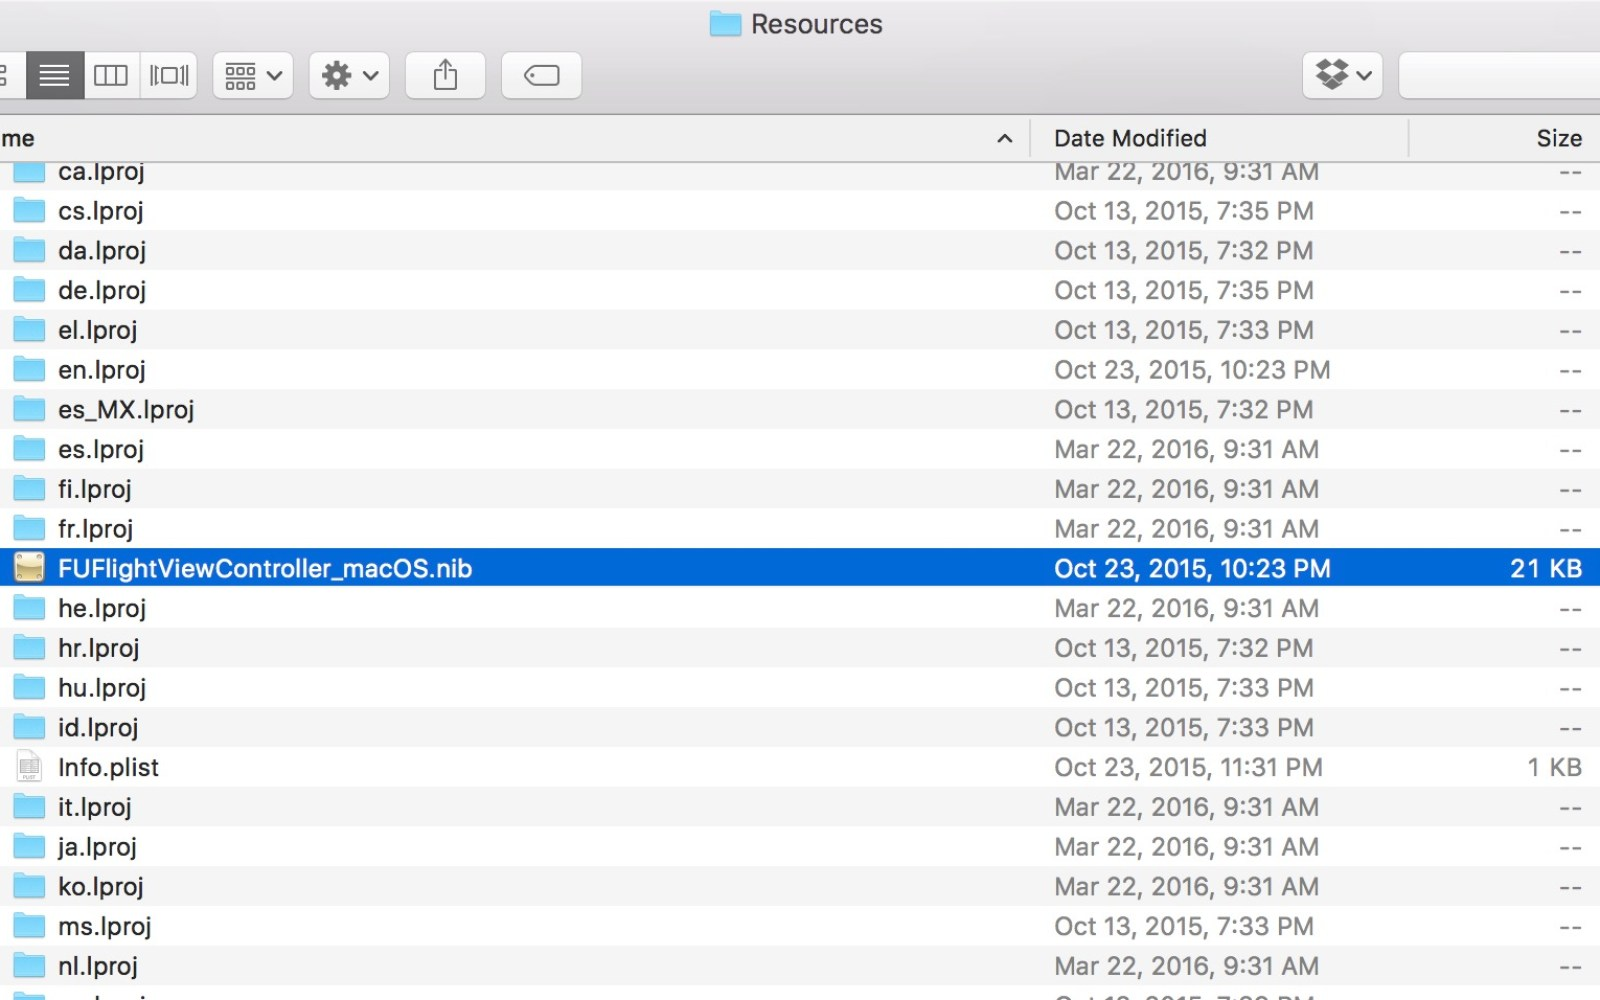 OS X 10.11.4 framework resource found with 'macOS' naming, fueling more speculation about an OS X rebranding